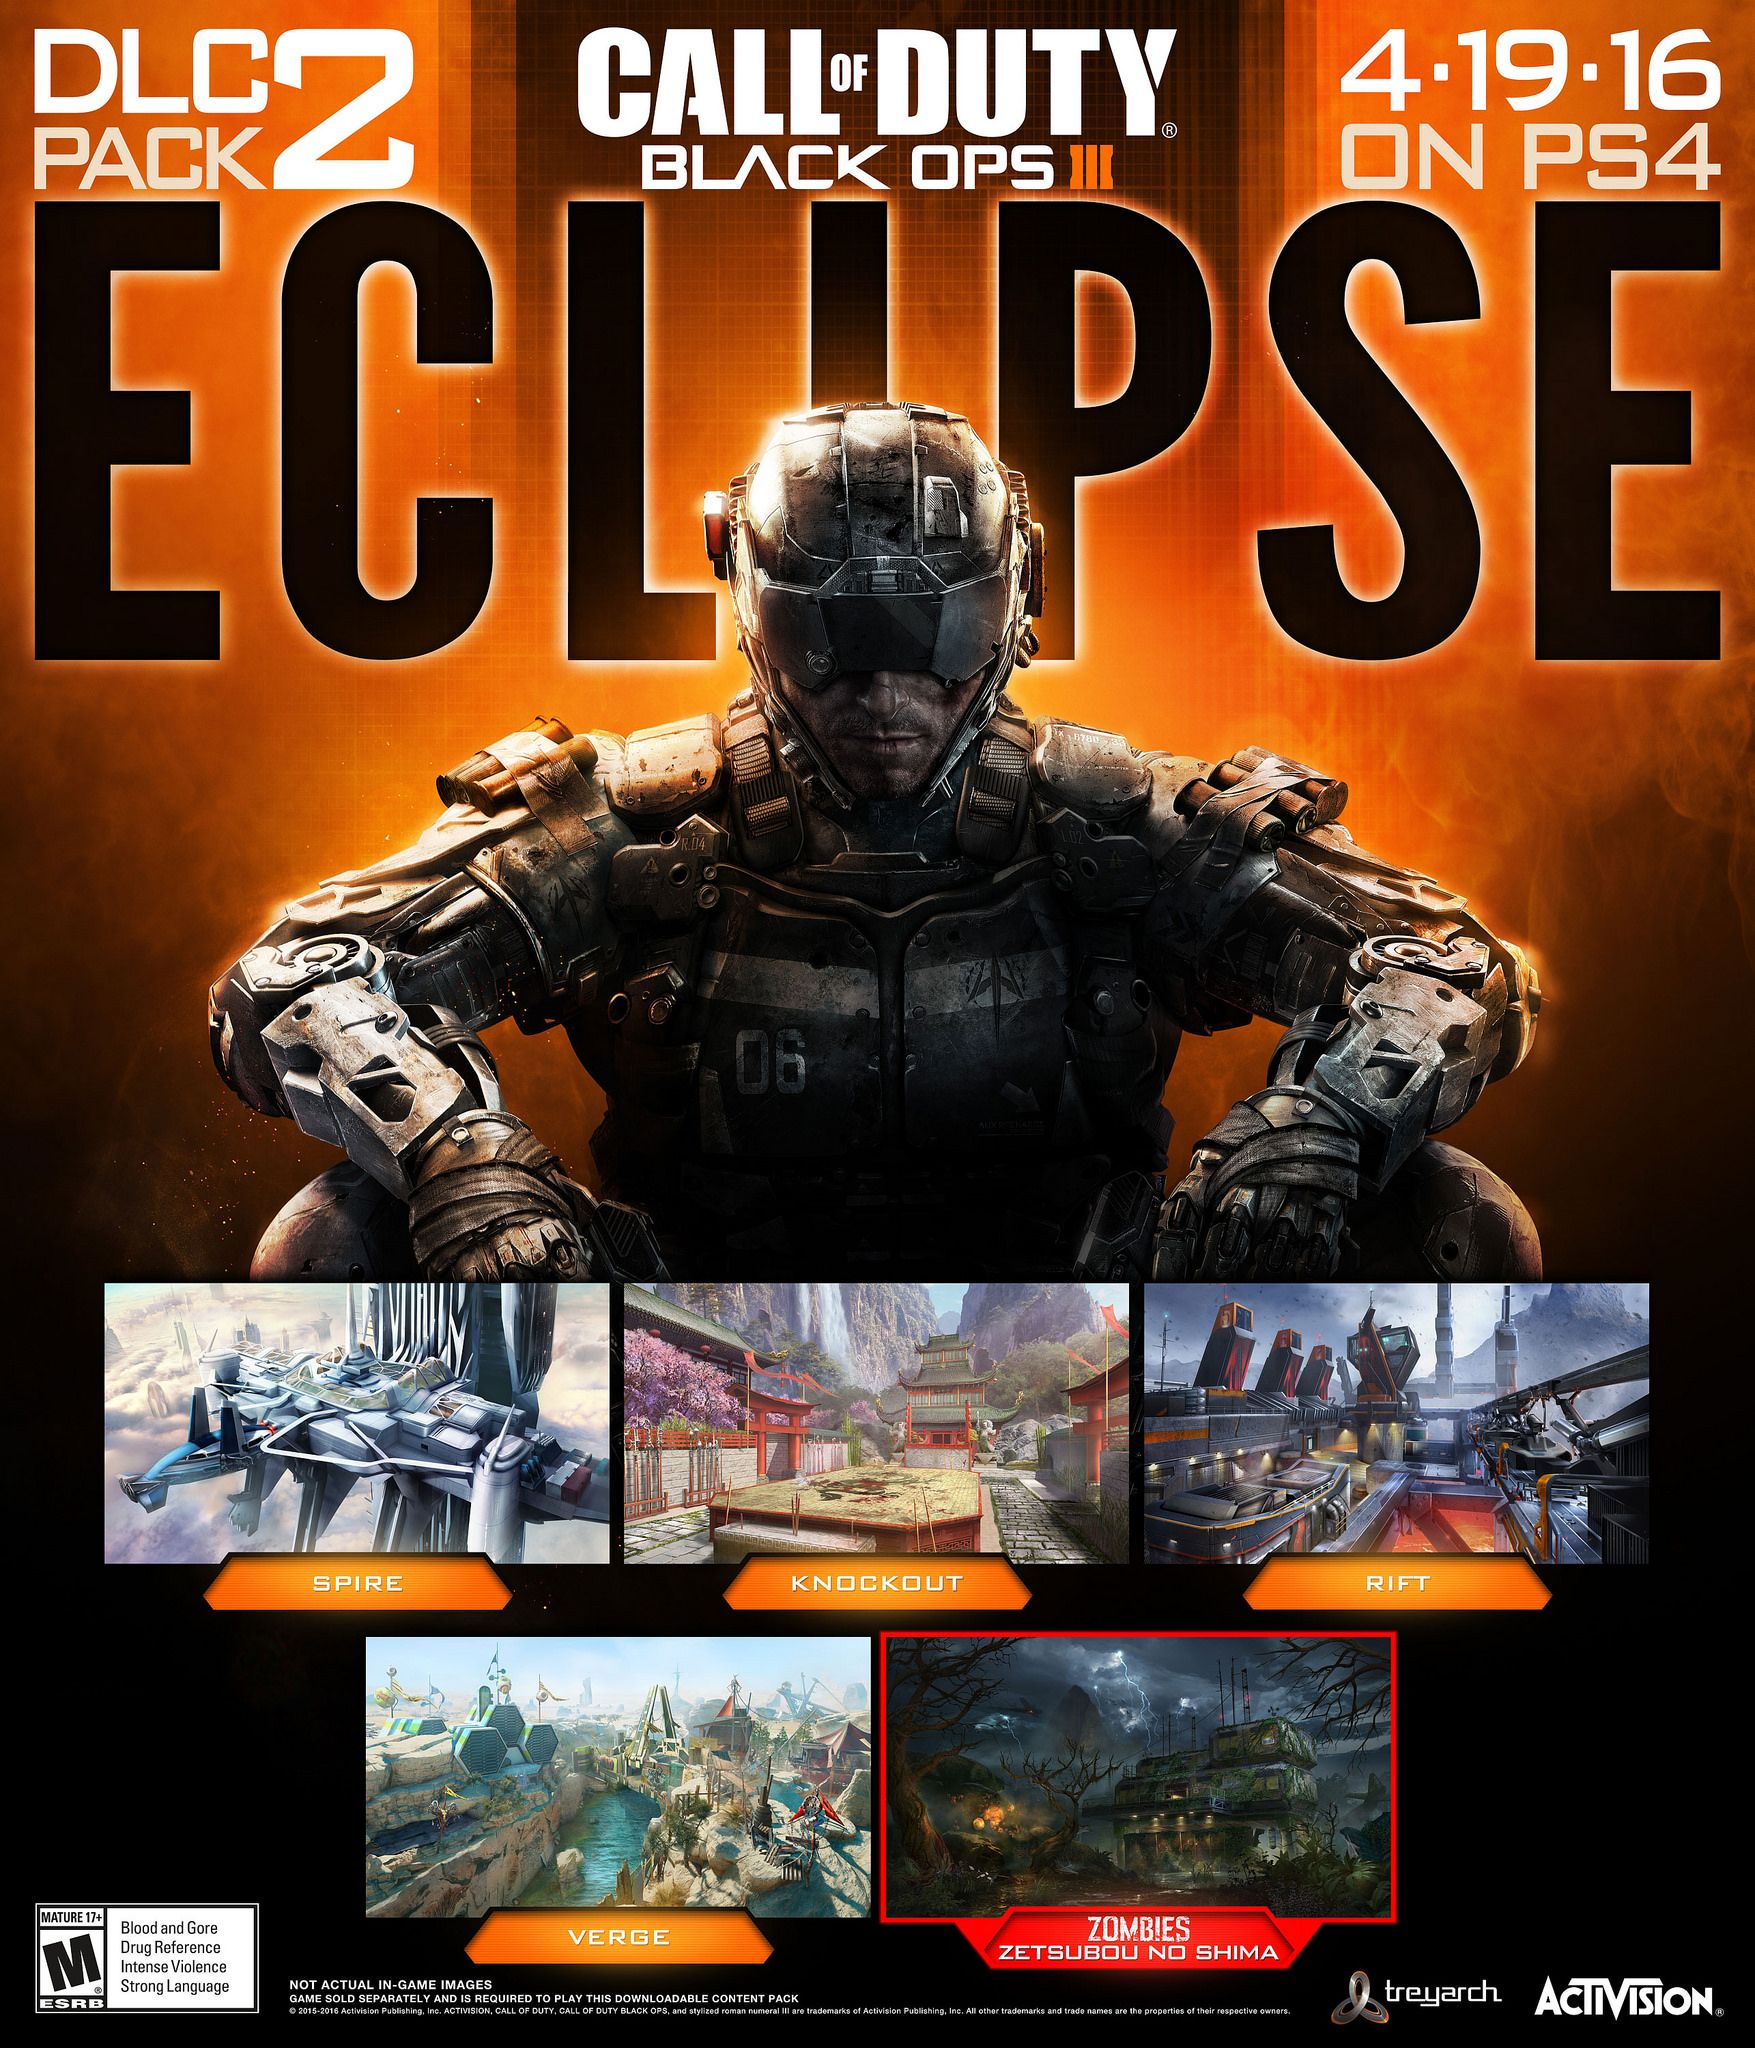 call_of_duty_black_ops_3_eclipse